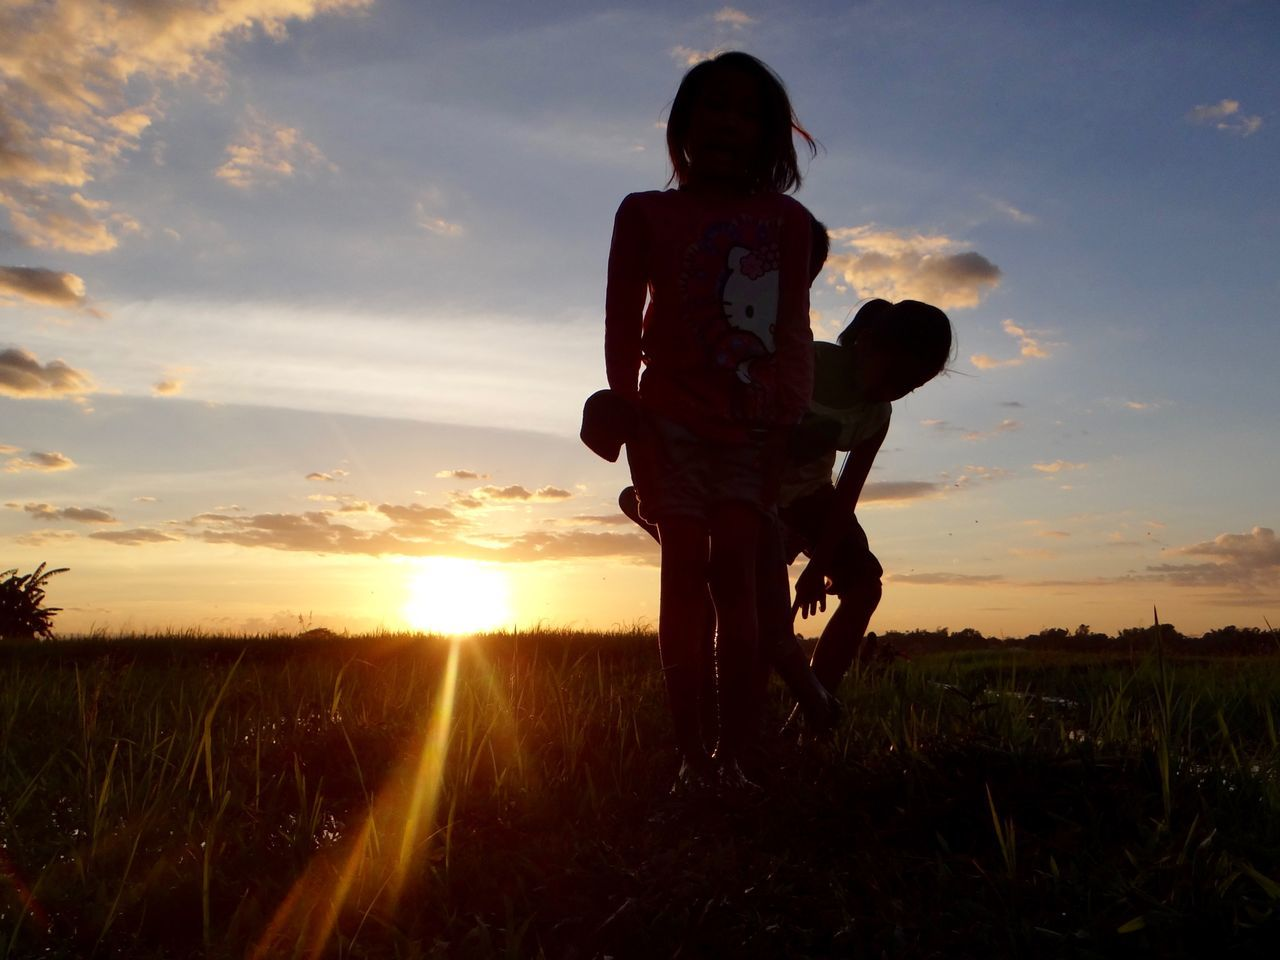 Childs play Beauty In Nature Child Children Field Nature Outdoors Sillouette Sky Sunset Sunset #sun #clouds #skylovers #sky #nature #beautifulinnature #naturalbeauty #photography #landscape